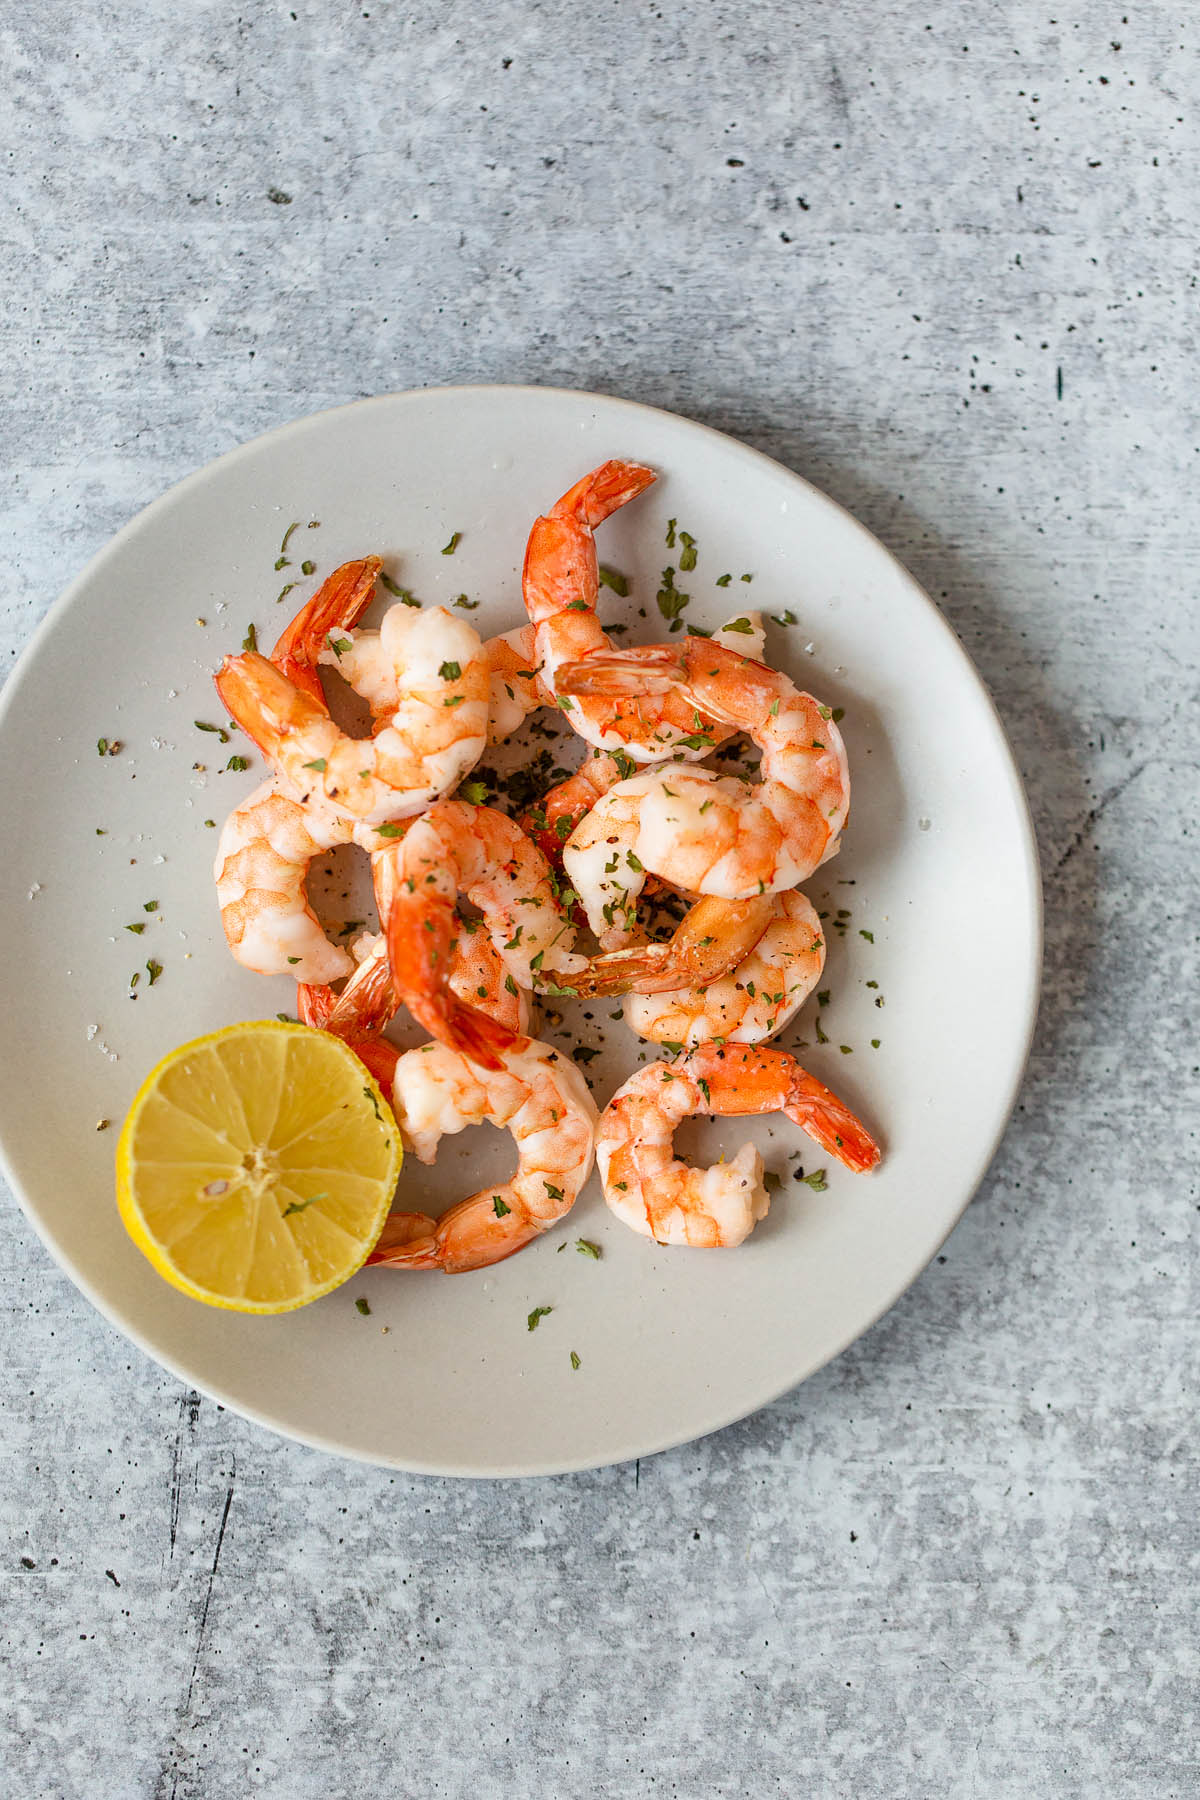 cooked shrimp on a plate with a lemon half